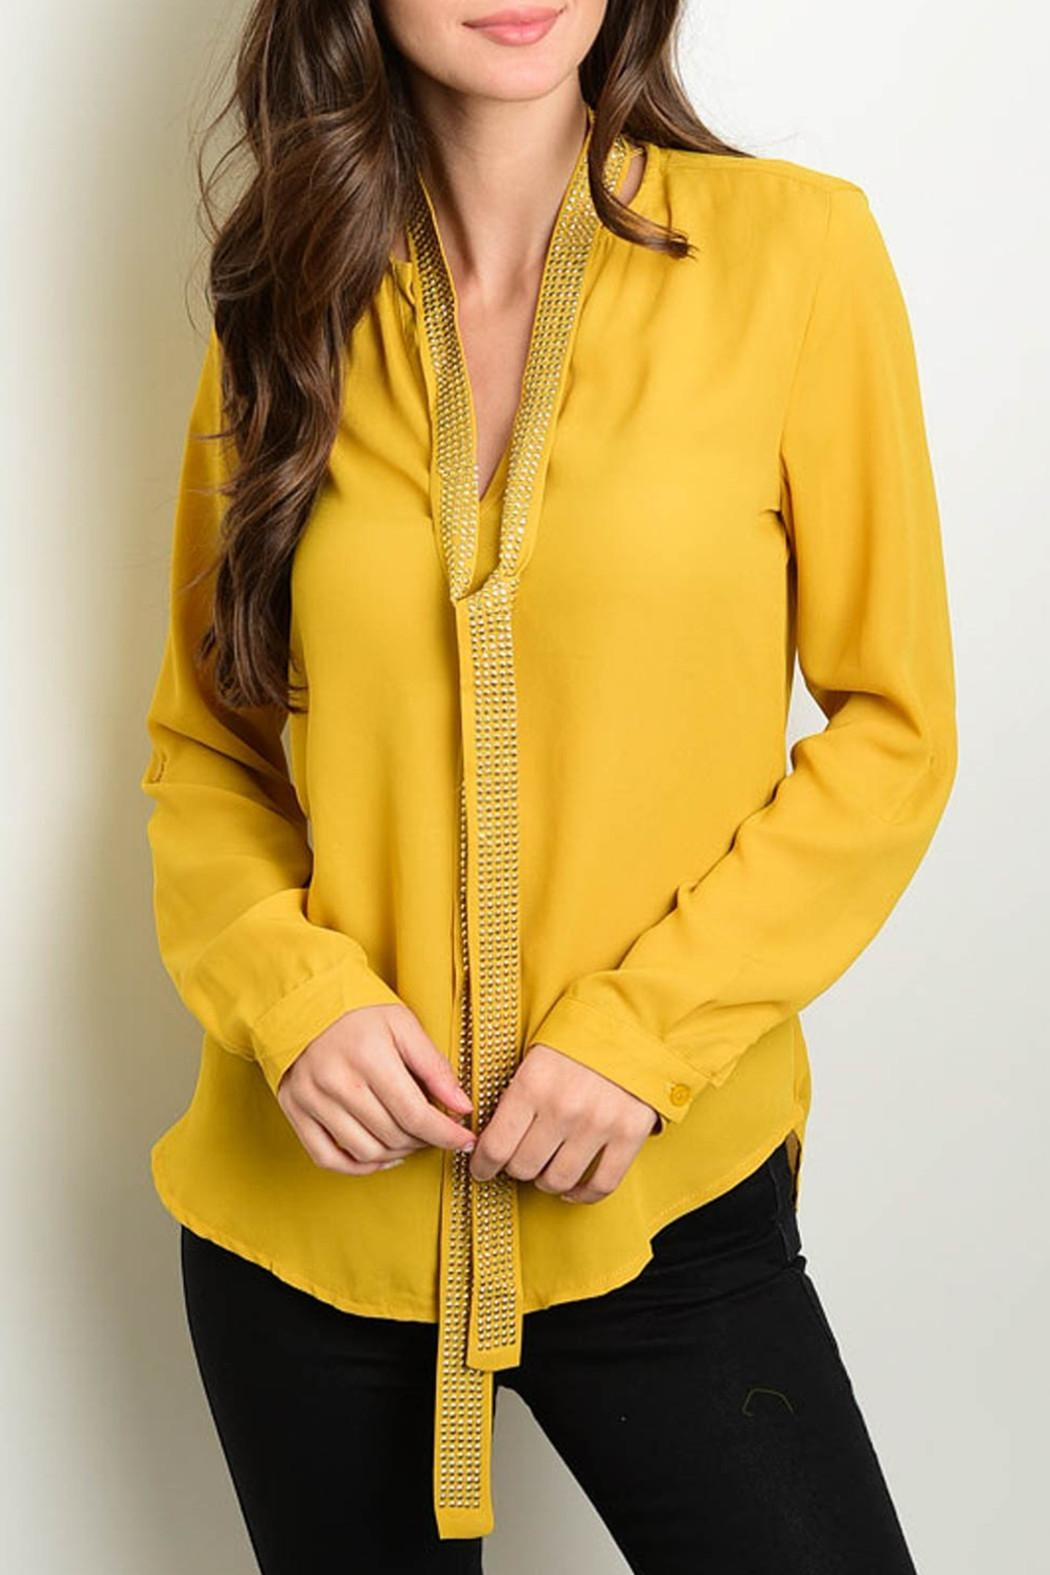 Roly Poly Mustard Necktie Blouse - Main Image